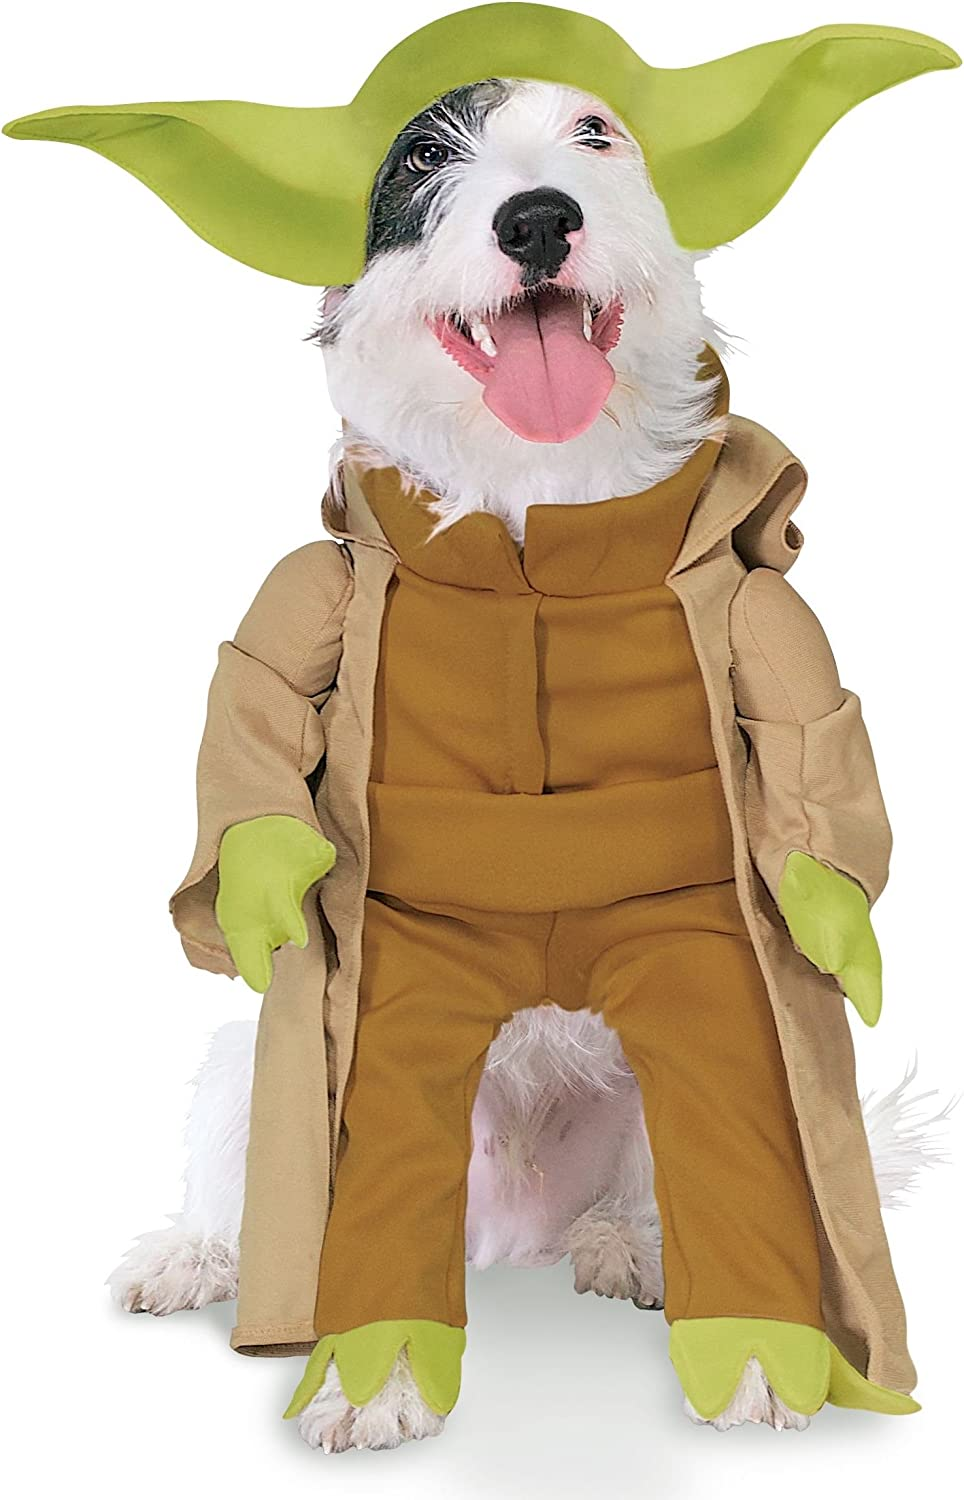 Yoda pet costume with plush arms